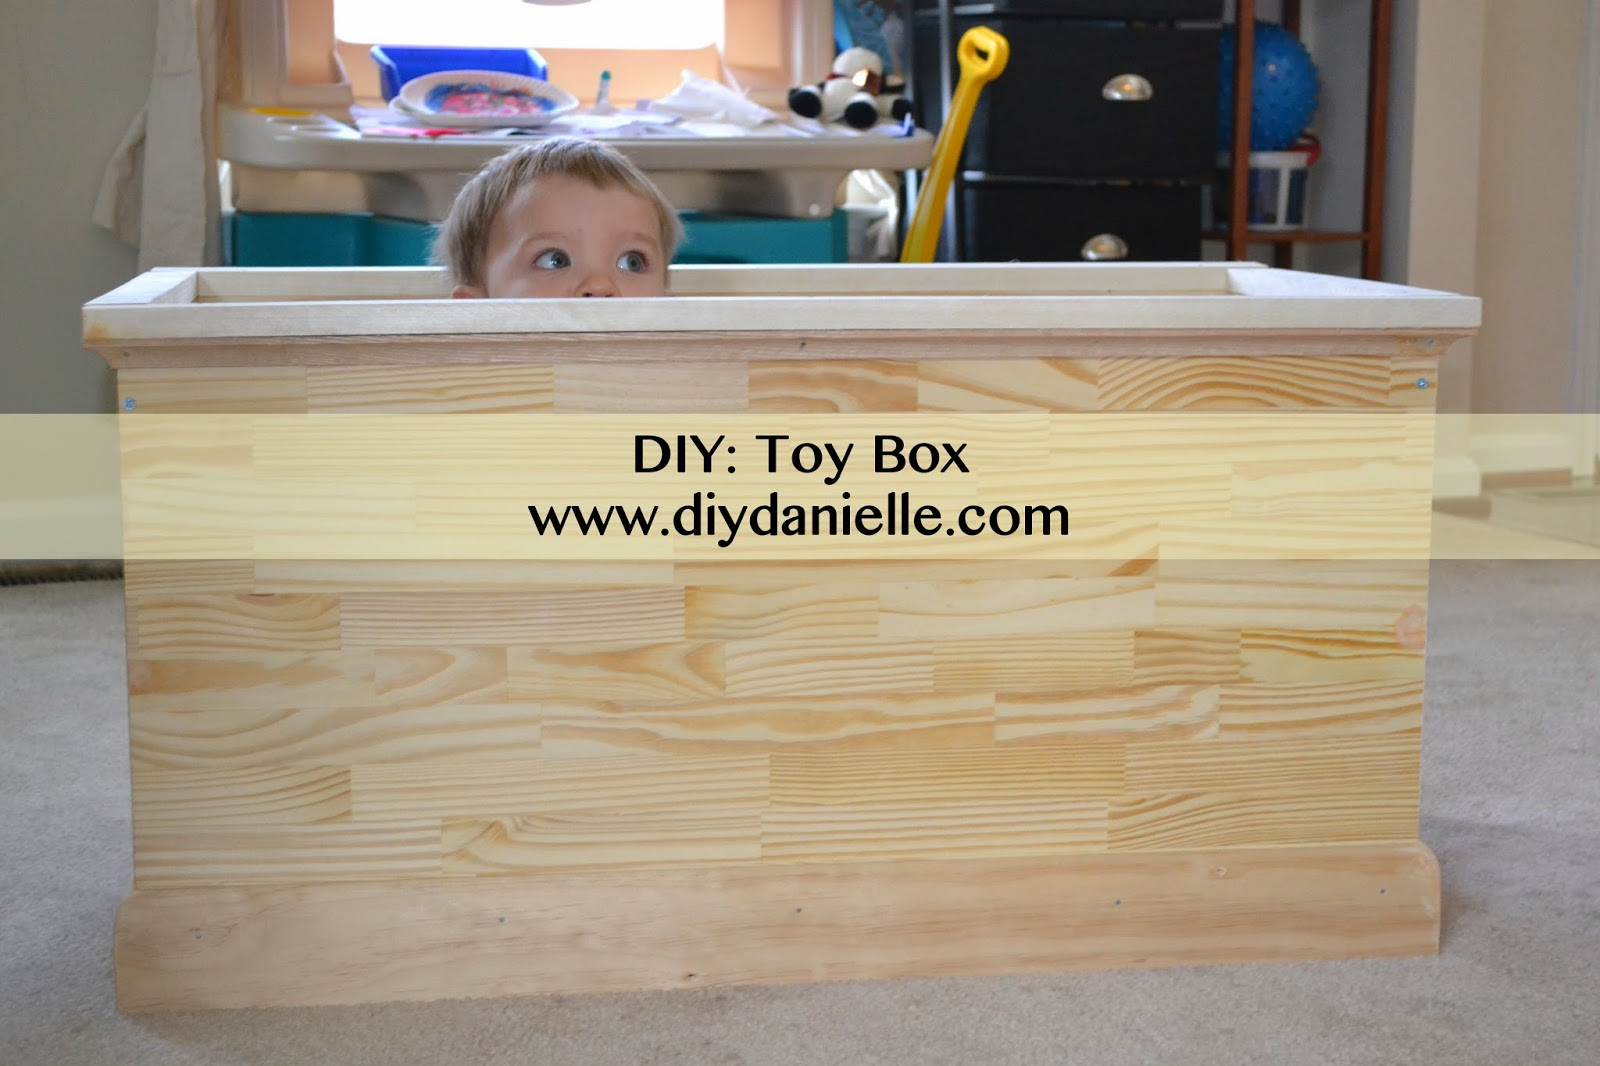 DIY make your own toy box plans Blueprints